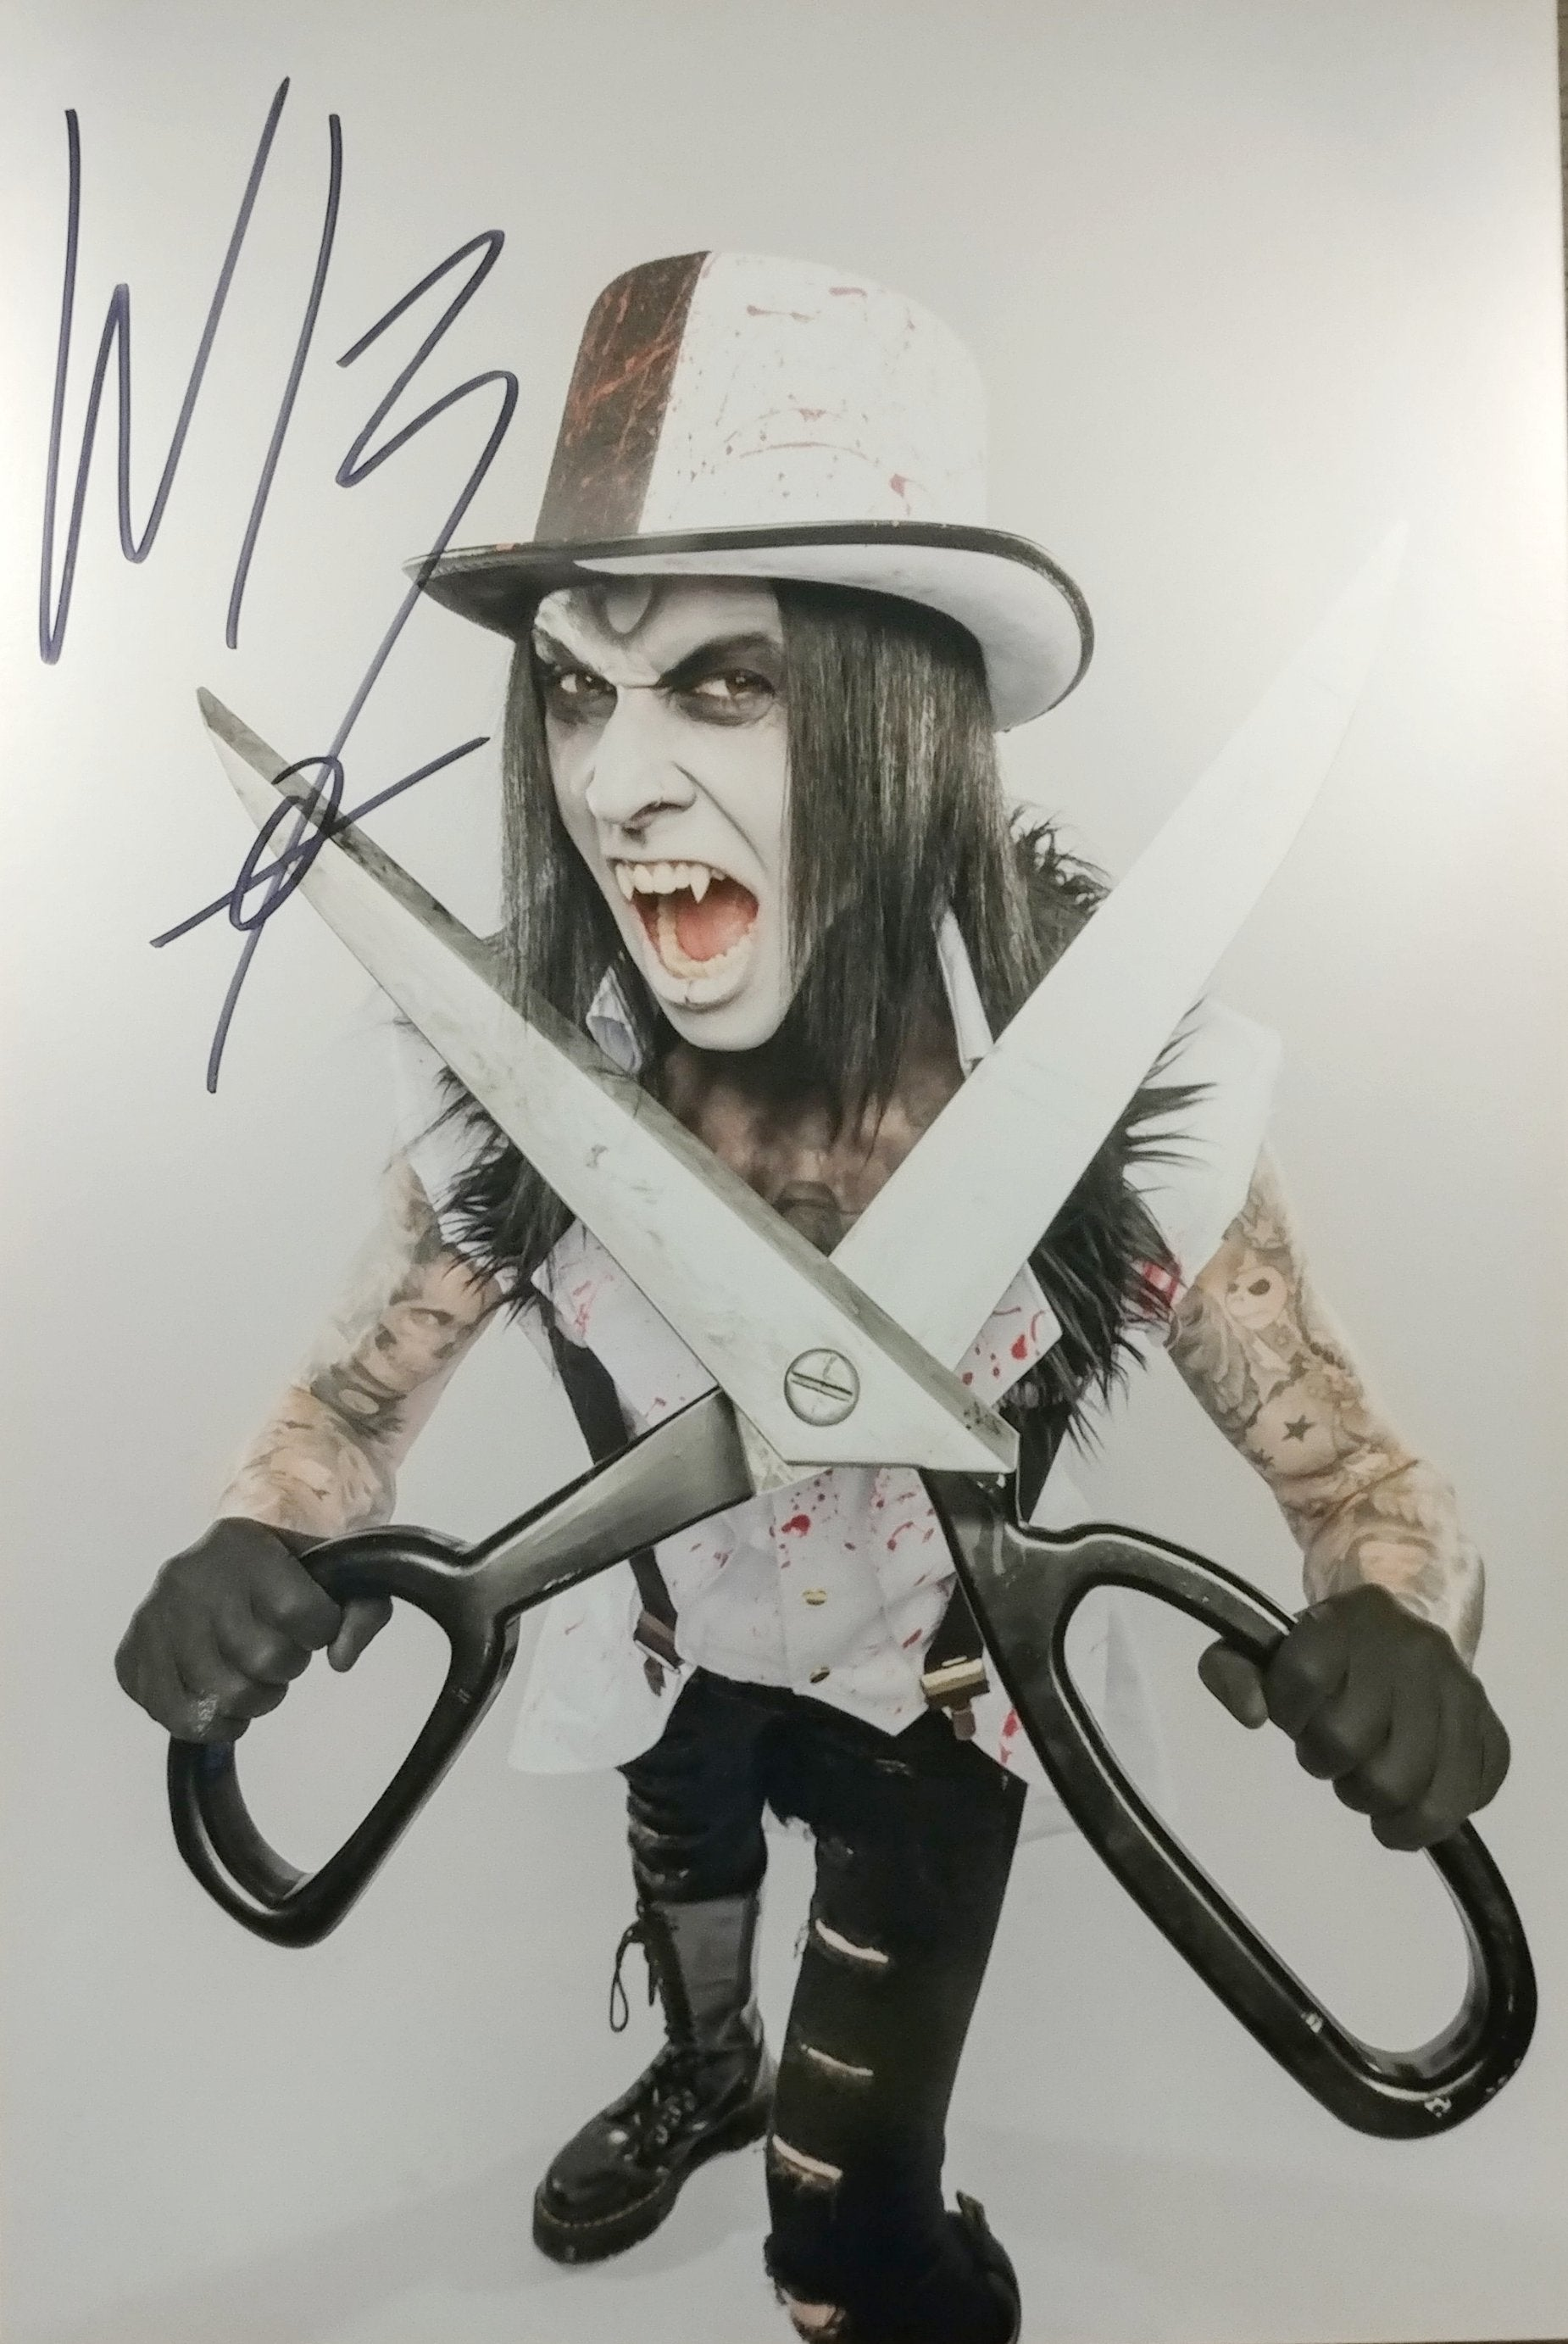 Wednesday 13 - Cut You - signed limited edition 8x12 metallic print (10 available)